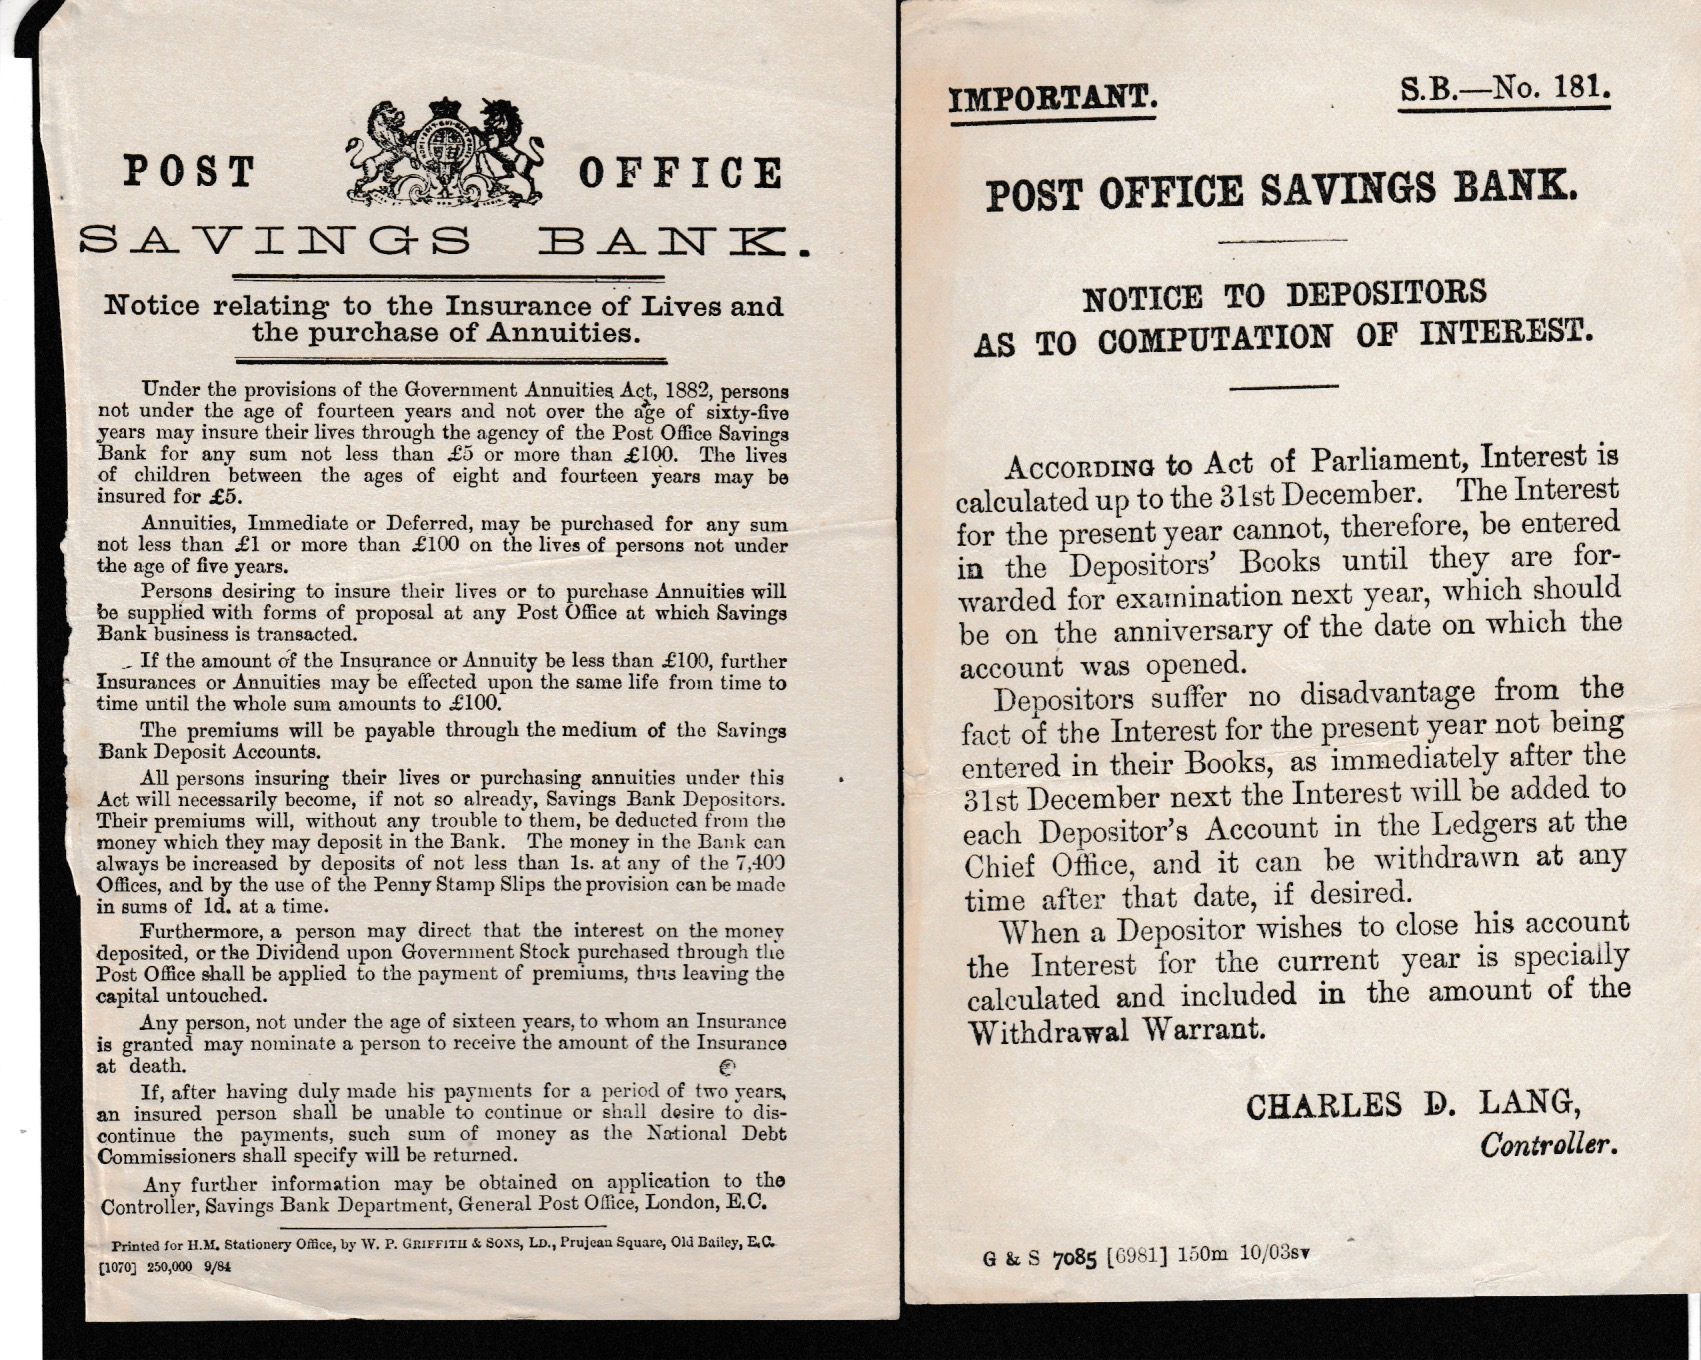 G.B. - Acts & Notices - Image 6 of 6